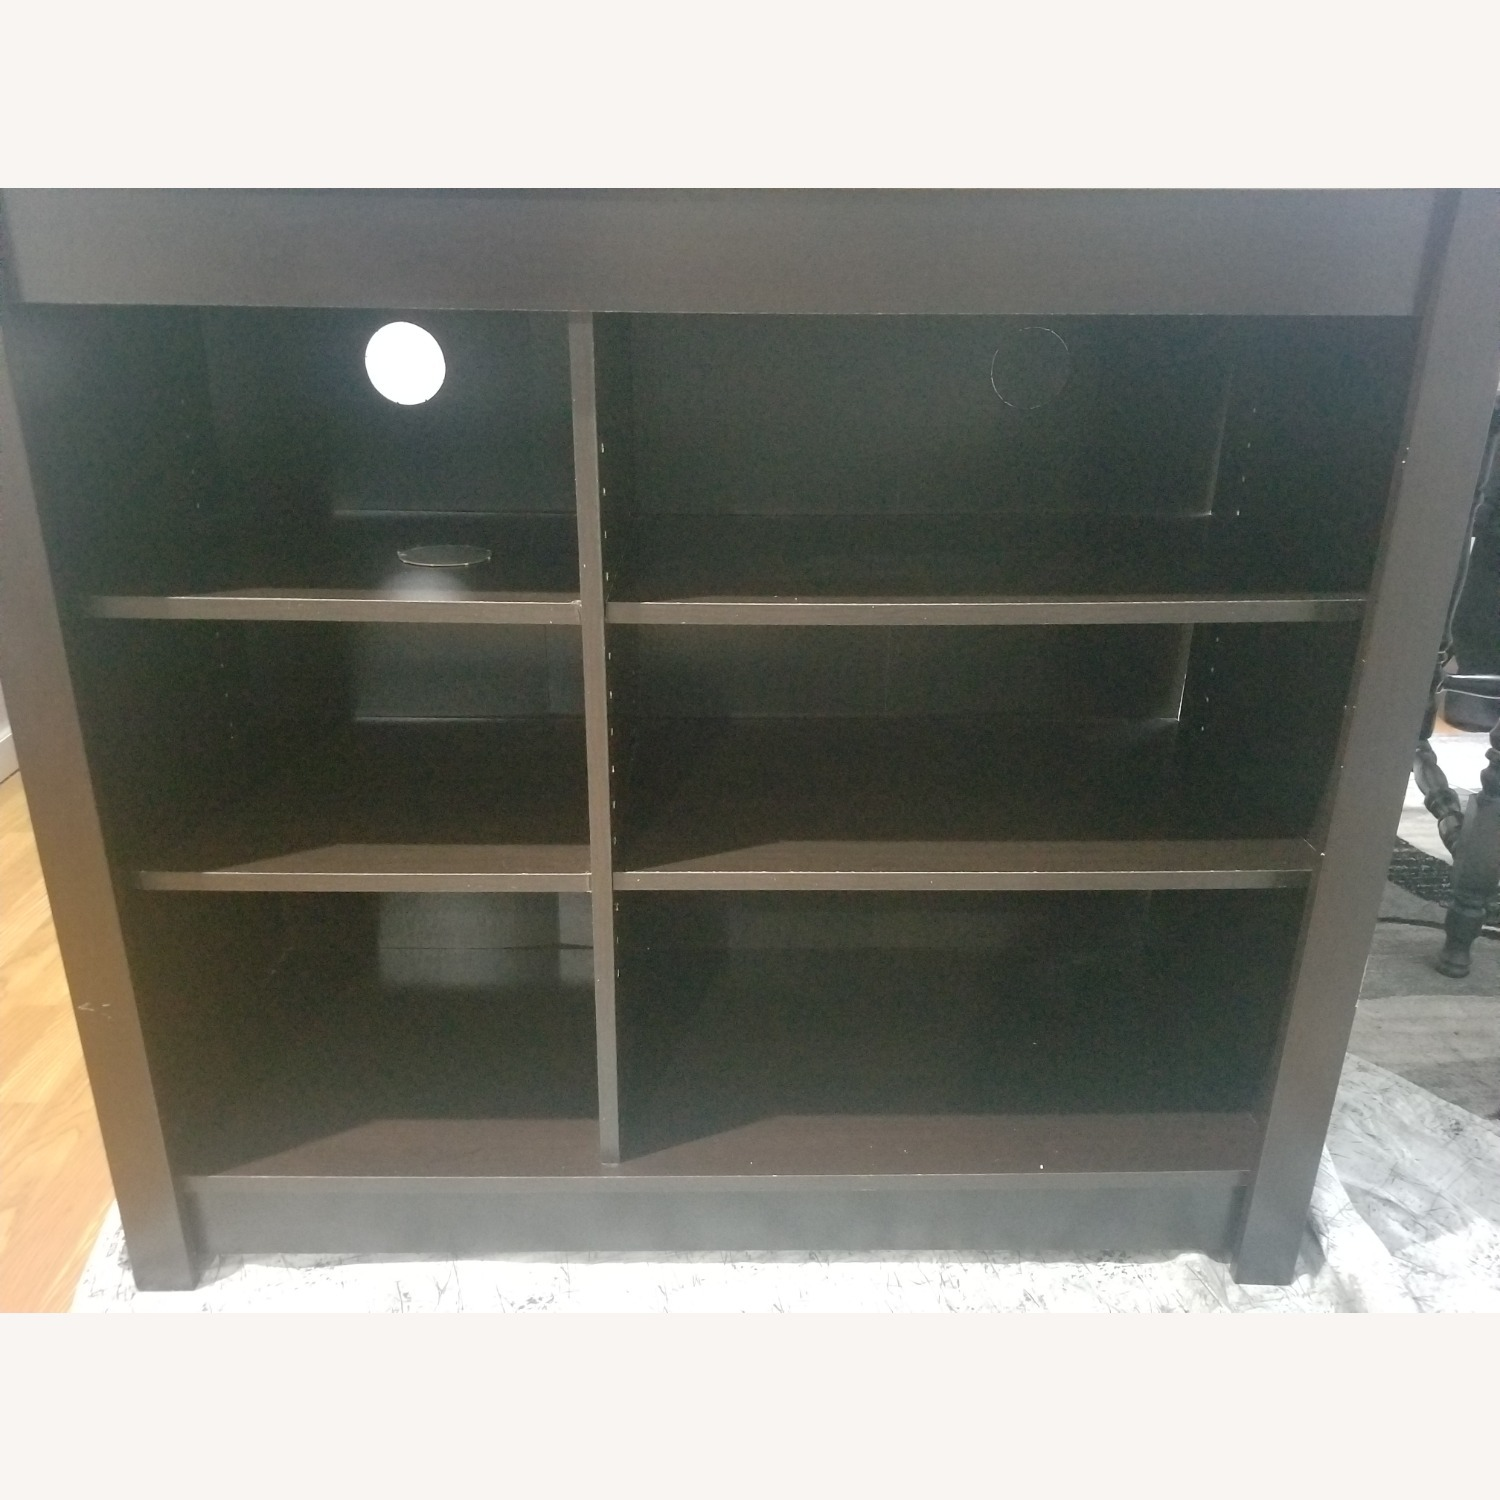 Wayfair Bookcase/Entertainment Console (with TV) - image-10